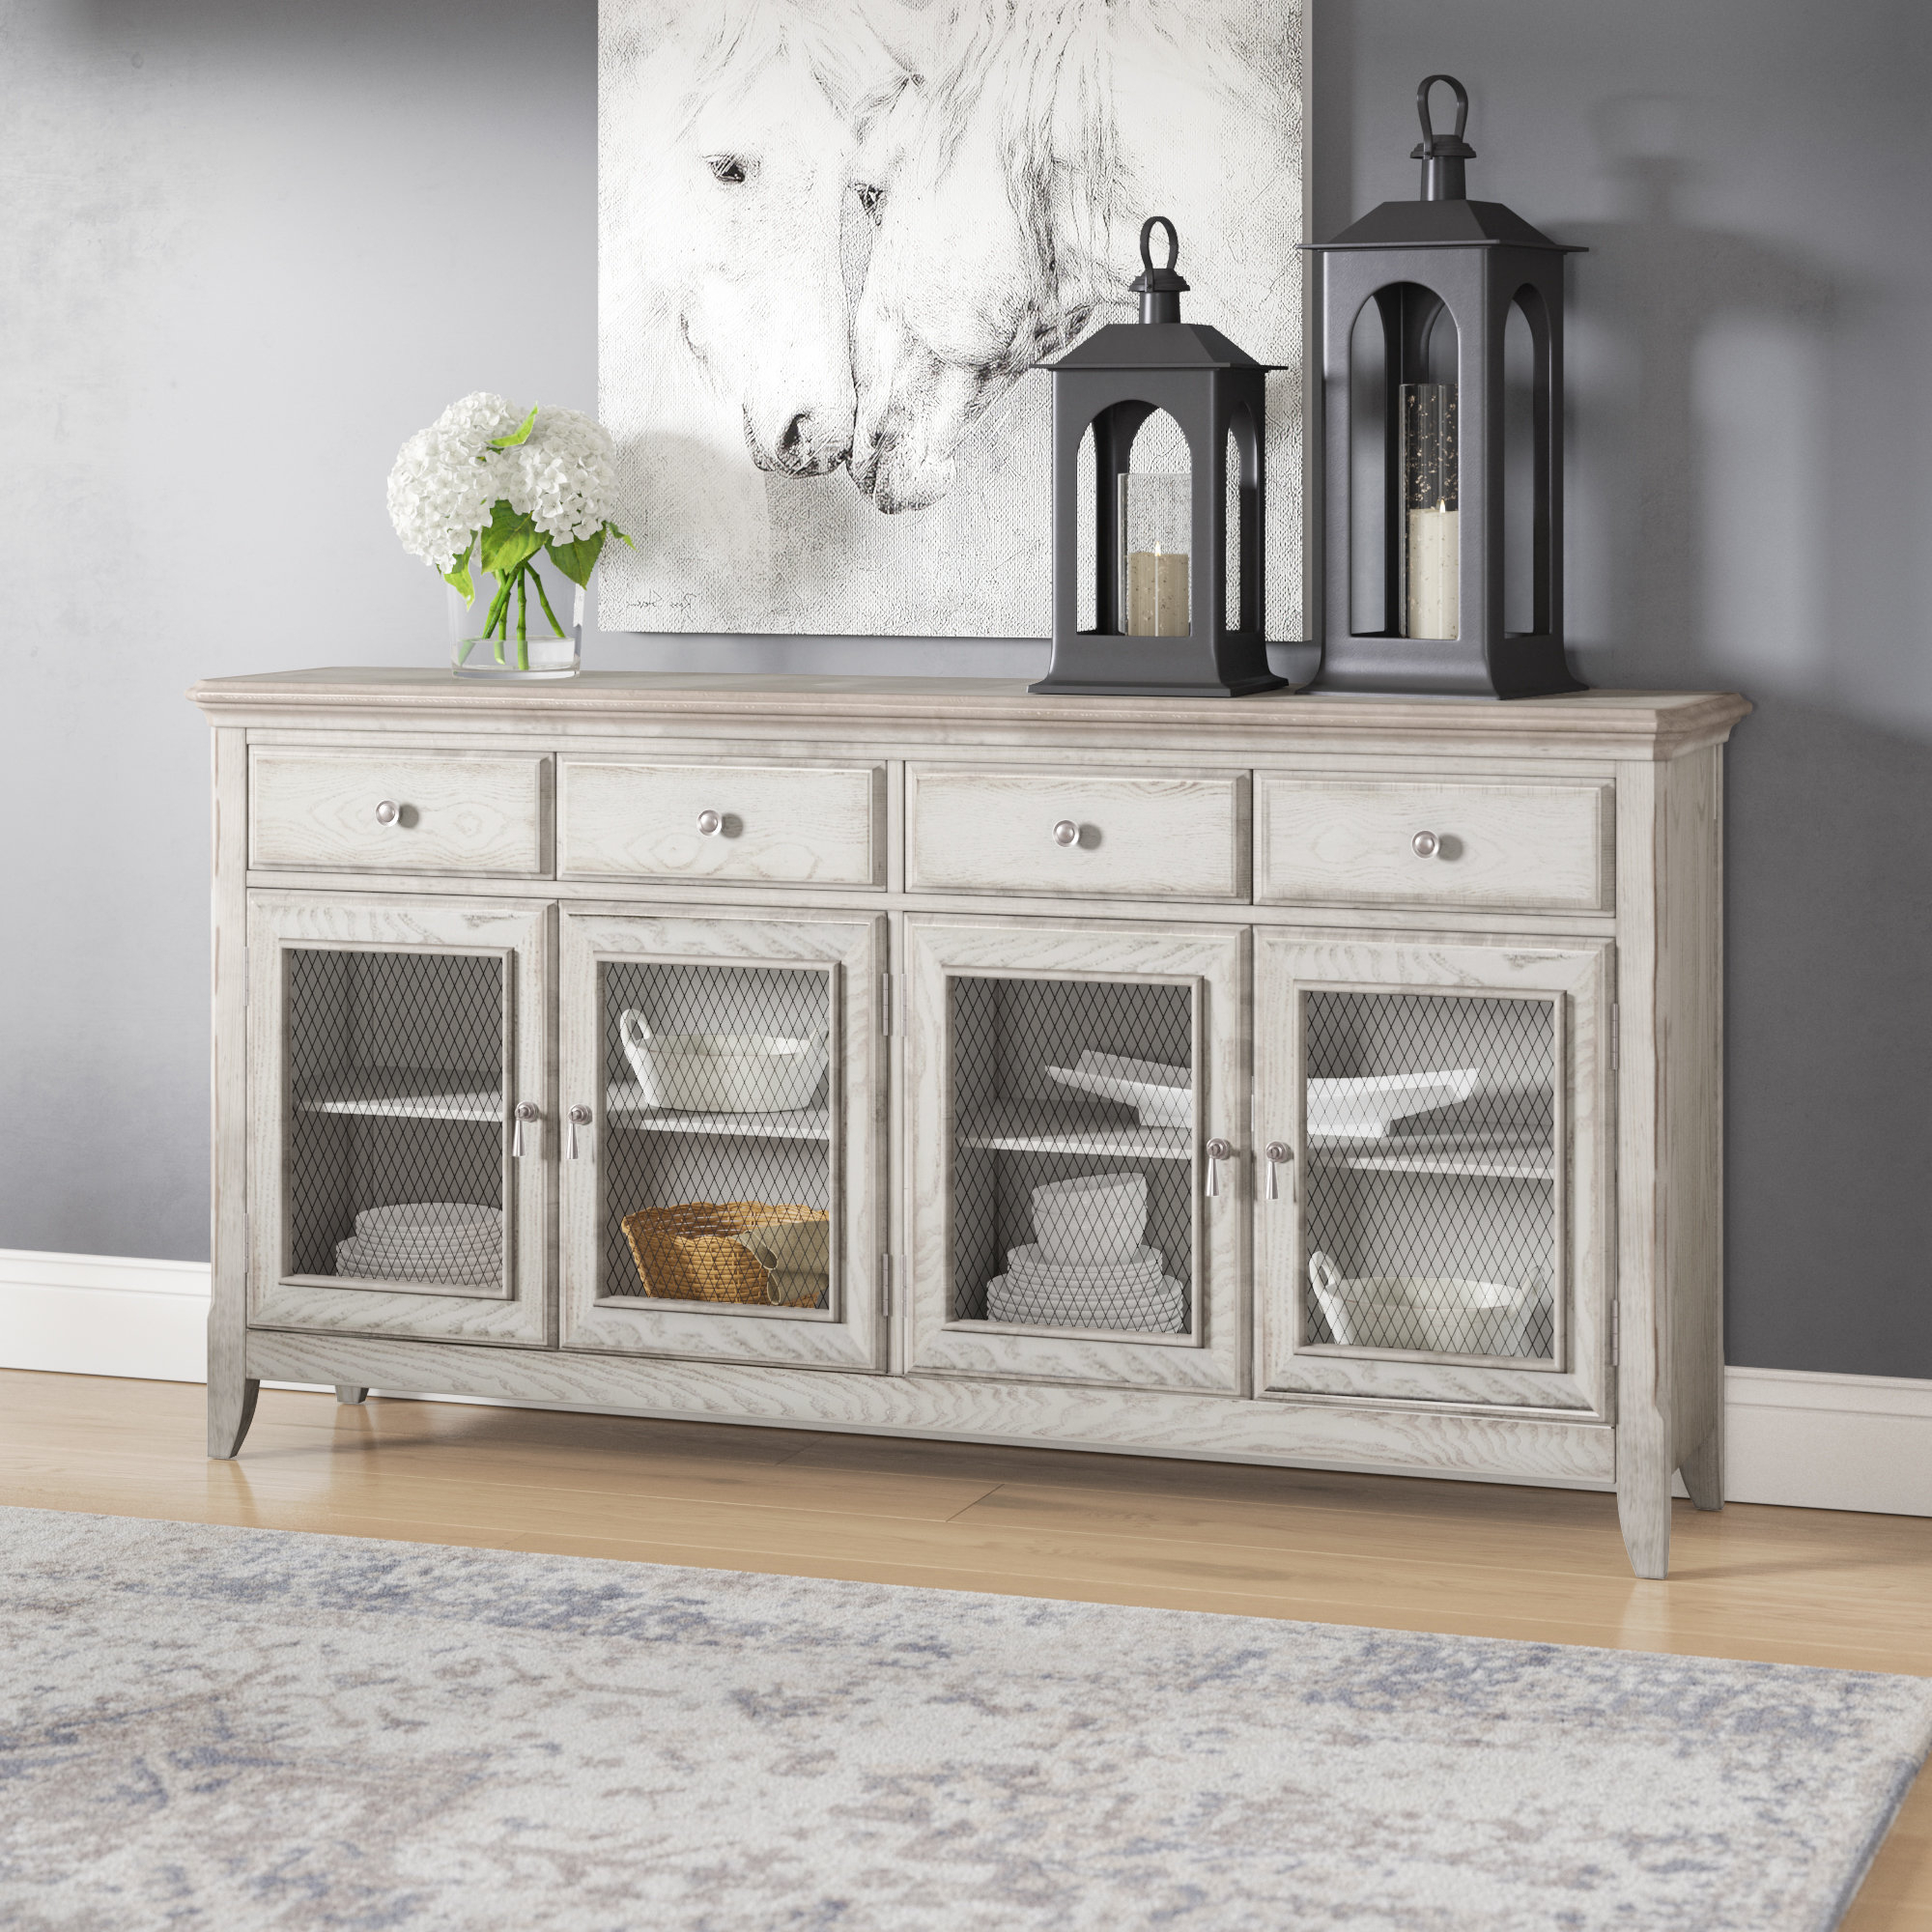 70 Inch Credenza | Wayfair Intended For Abhinav Credenzas (View 3 of 20)